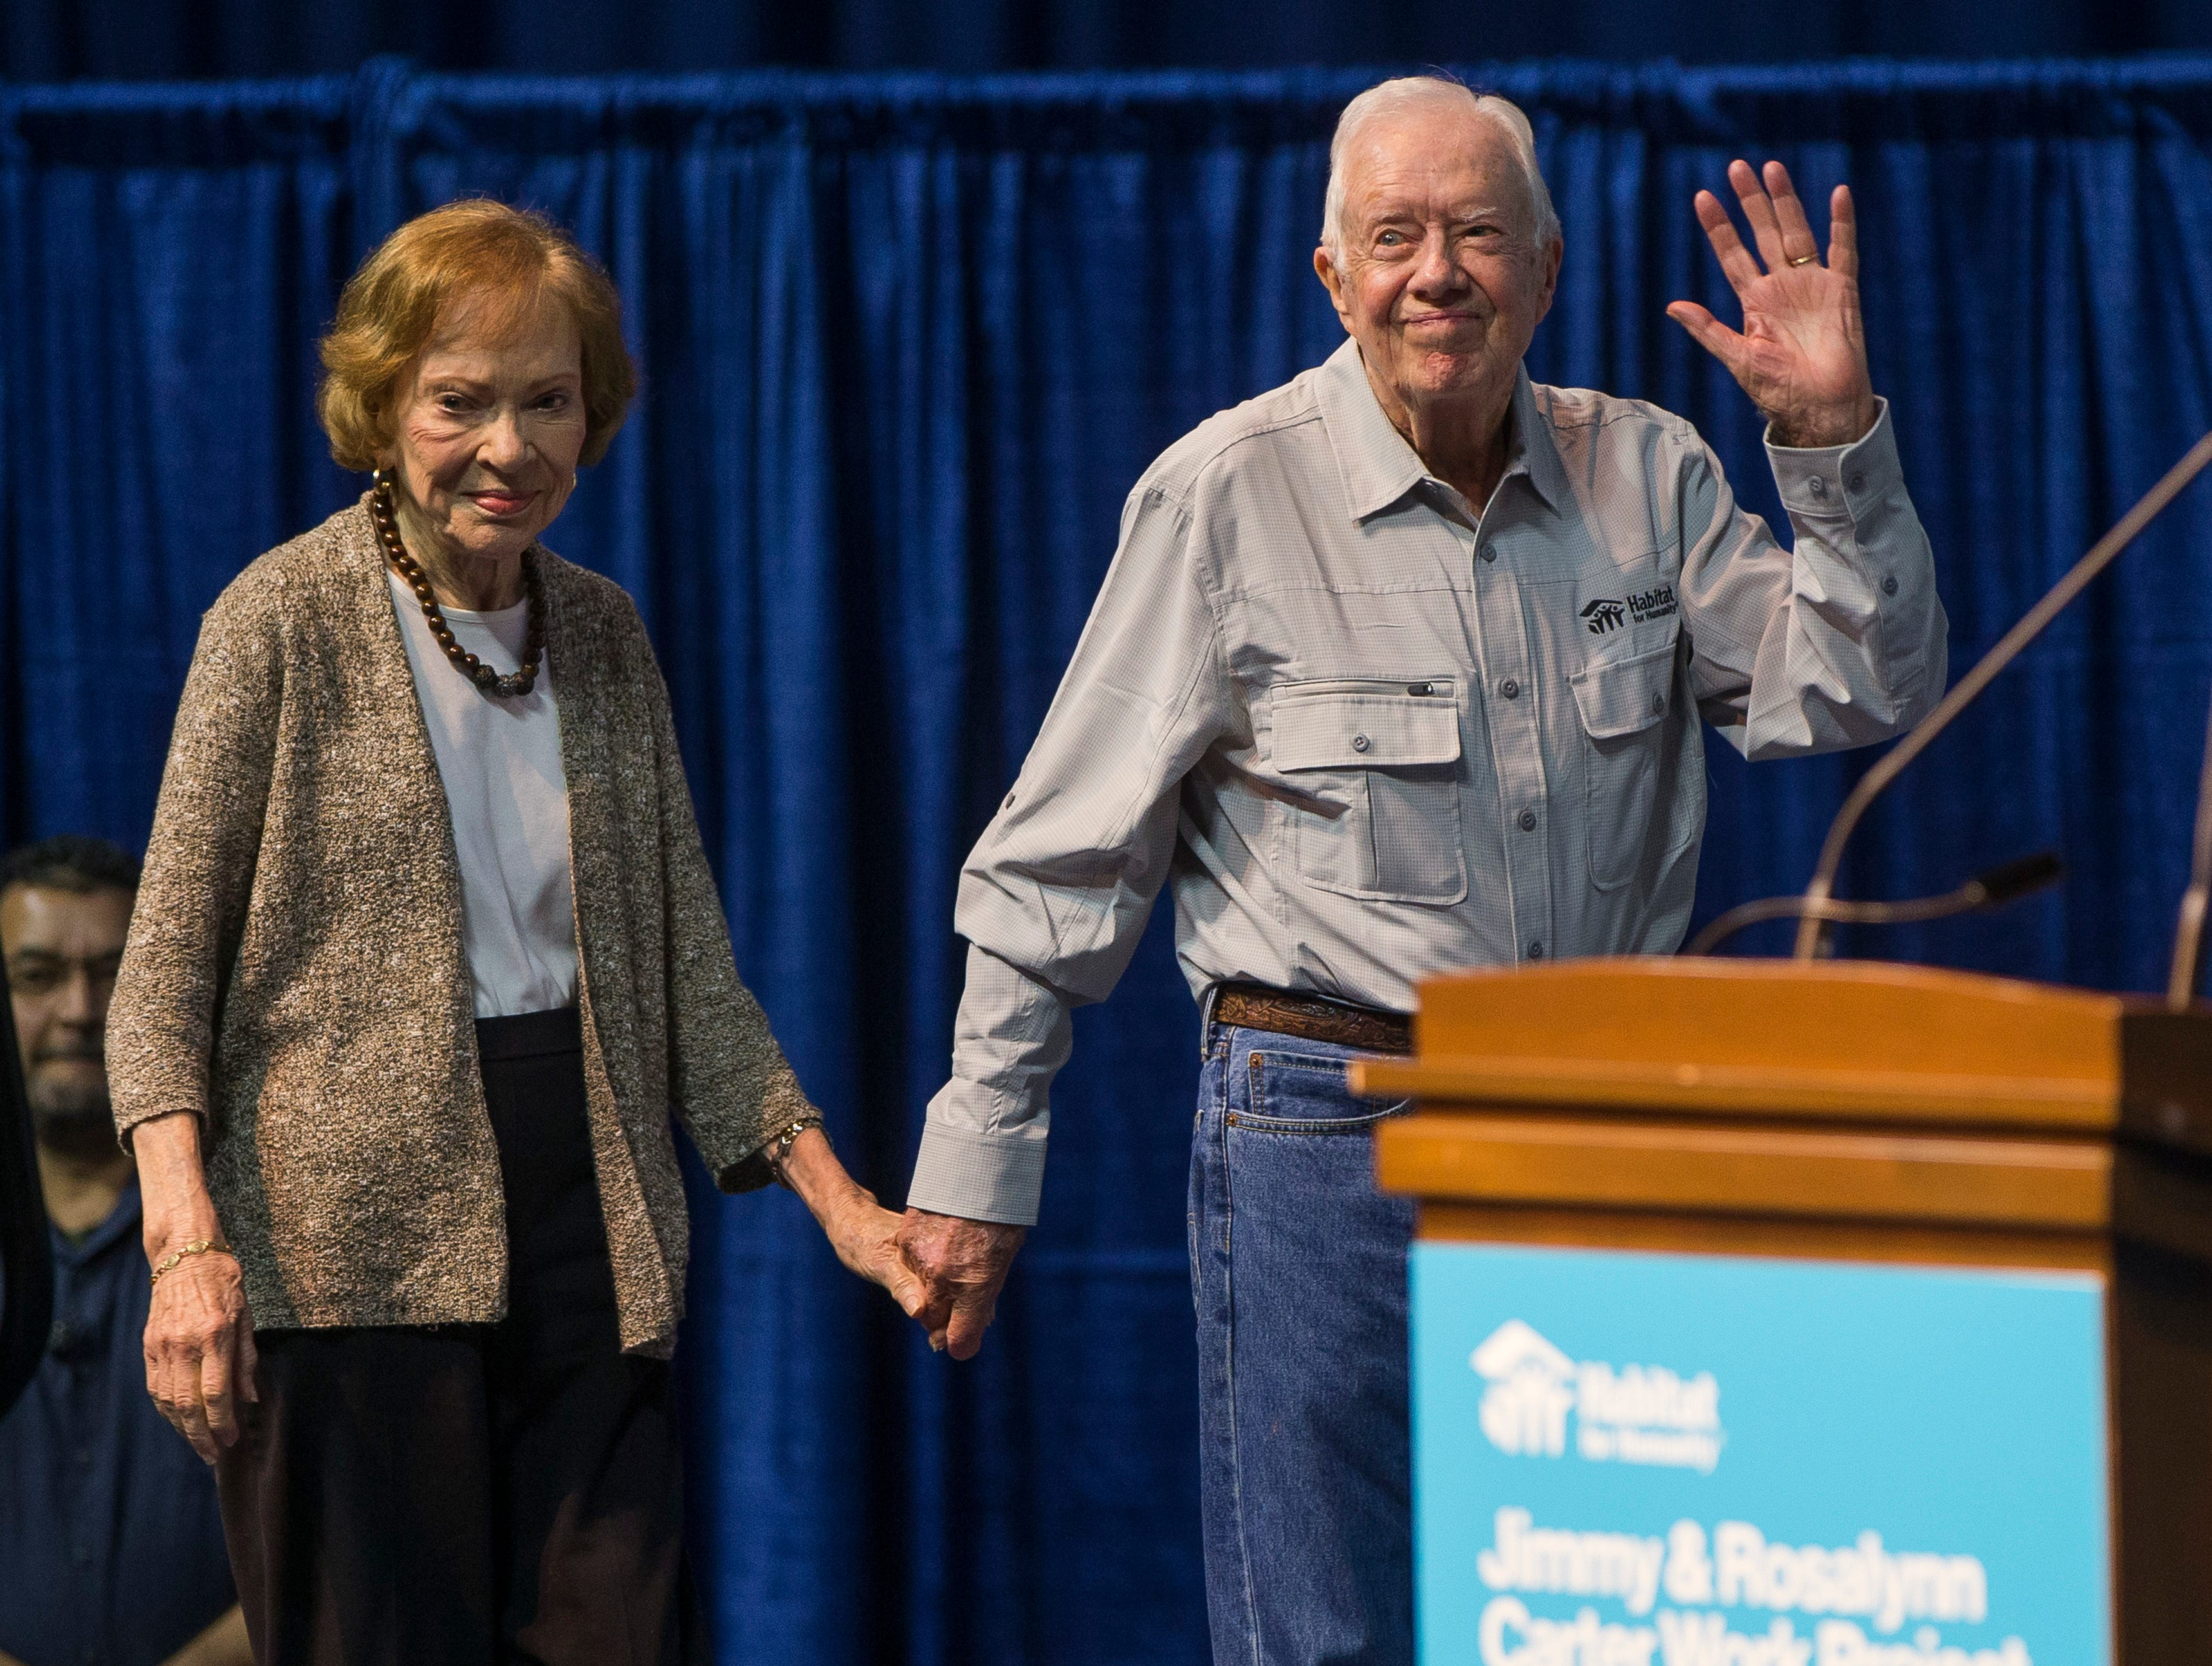 Former President Jimmy Carter waves to the crowd as he takes the stage with his wife, former first lady Rosalynn Carter, during the opening ceremony for the Jimmy & Rosalynn Carter Work Project, Sunday, Aug. 26, 2018, inside the University of Notre Dame's Purcell Pavilion in South Bend, Ind.